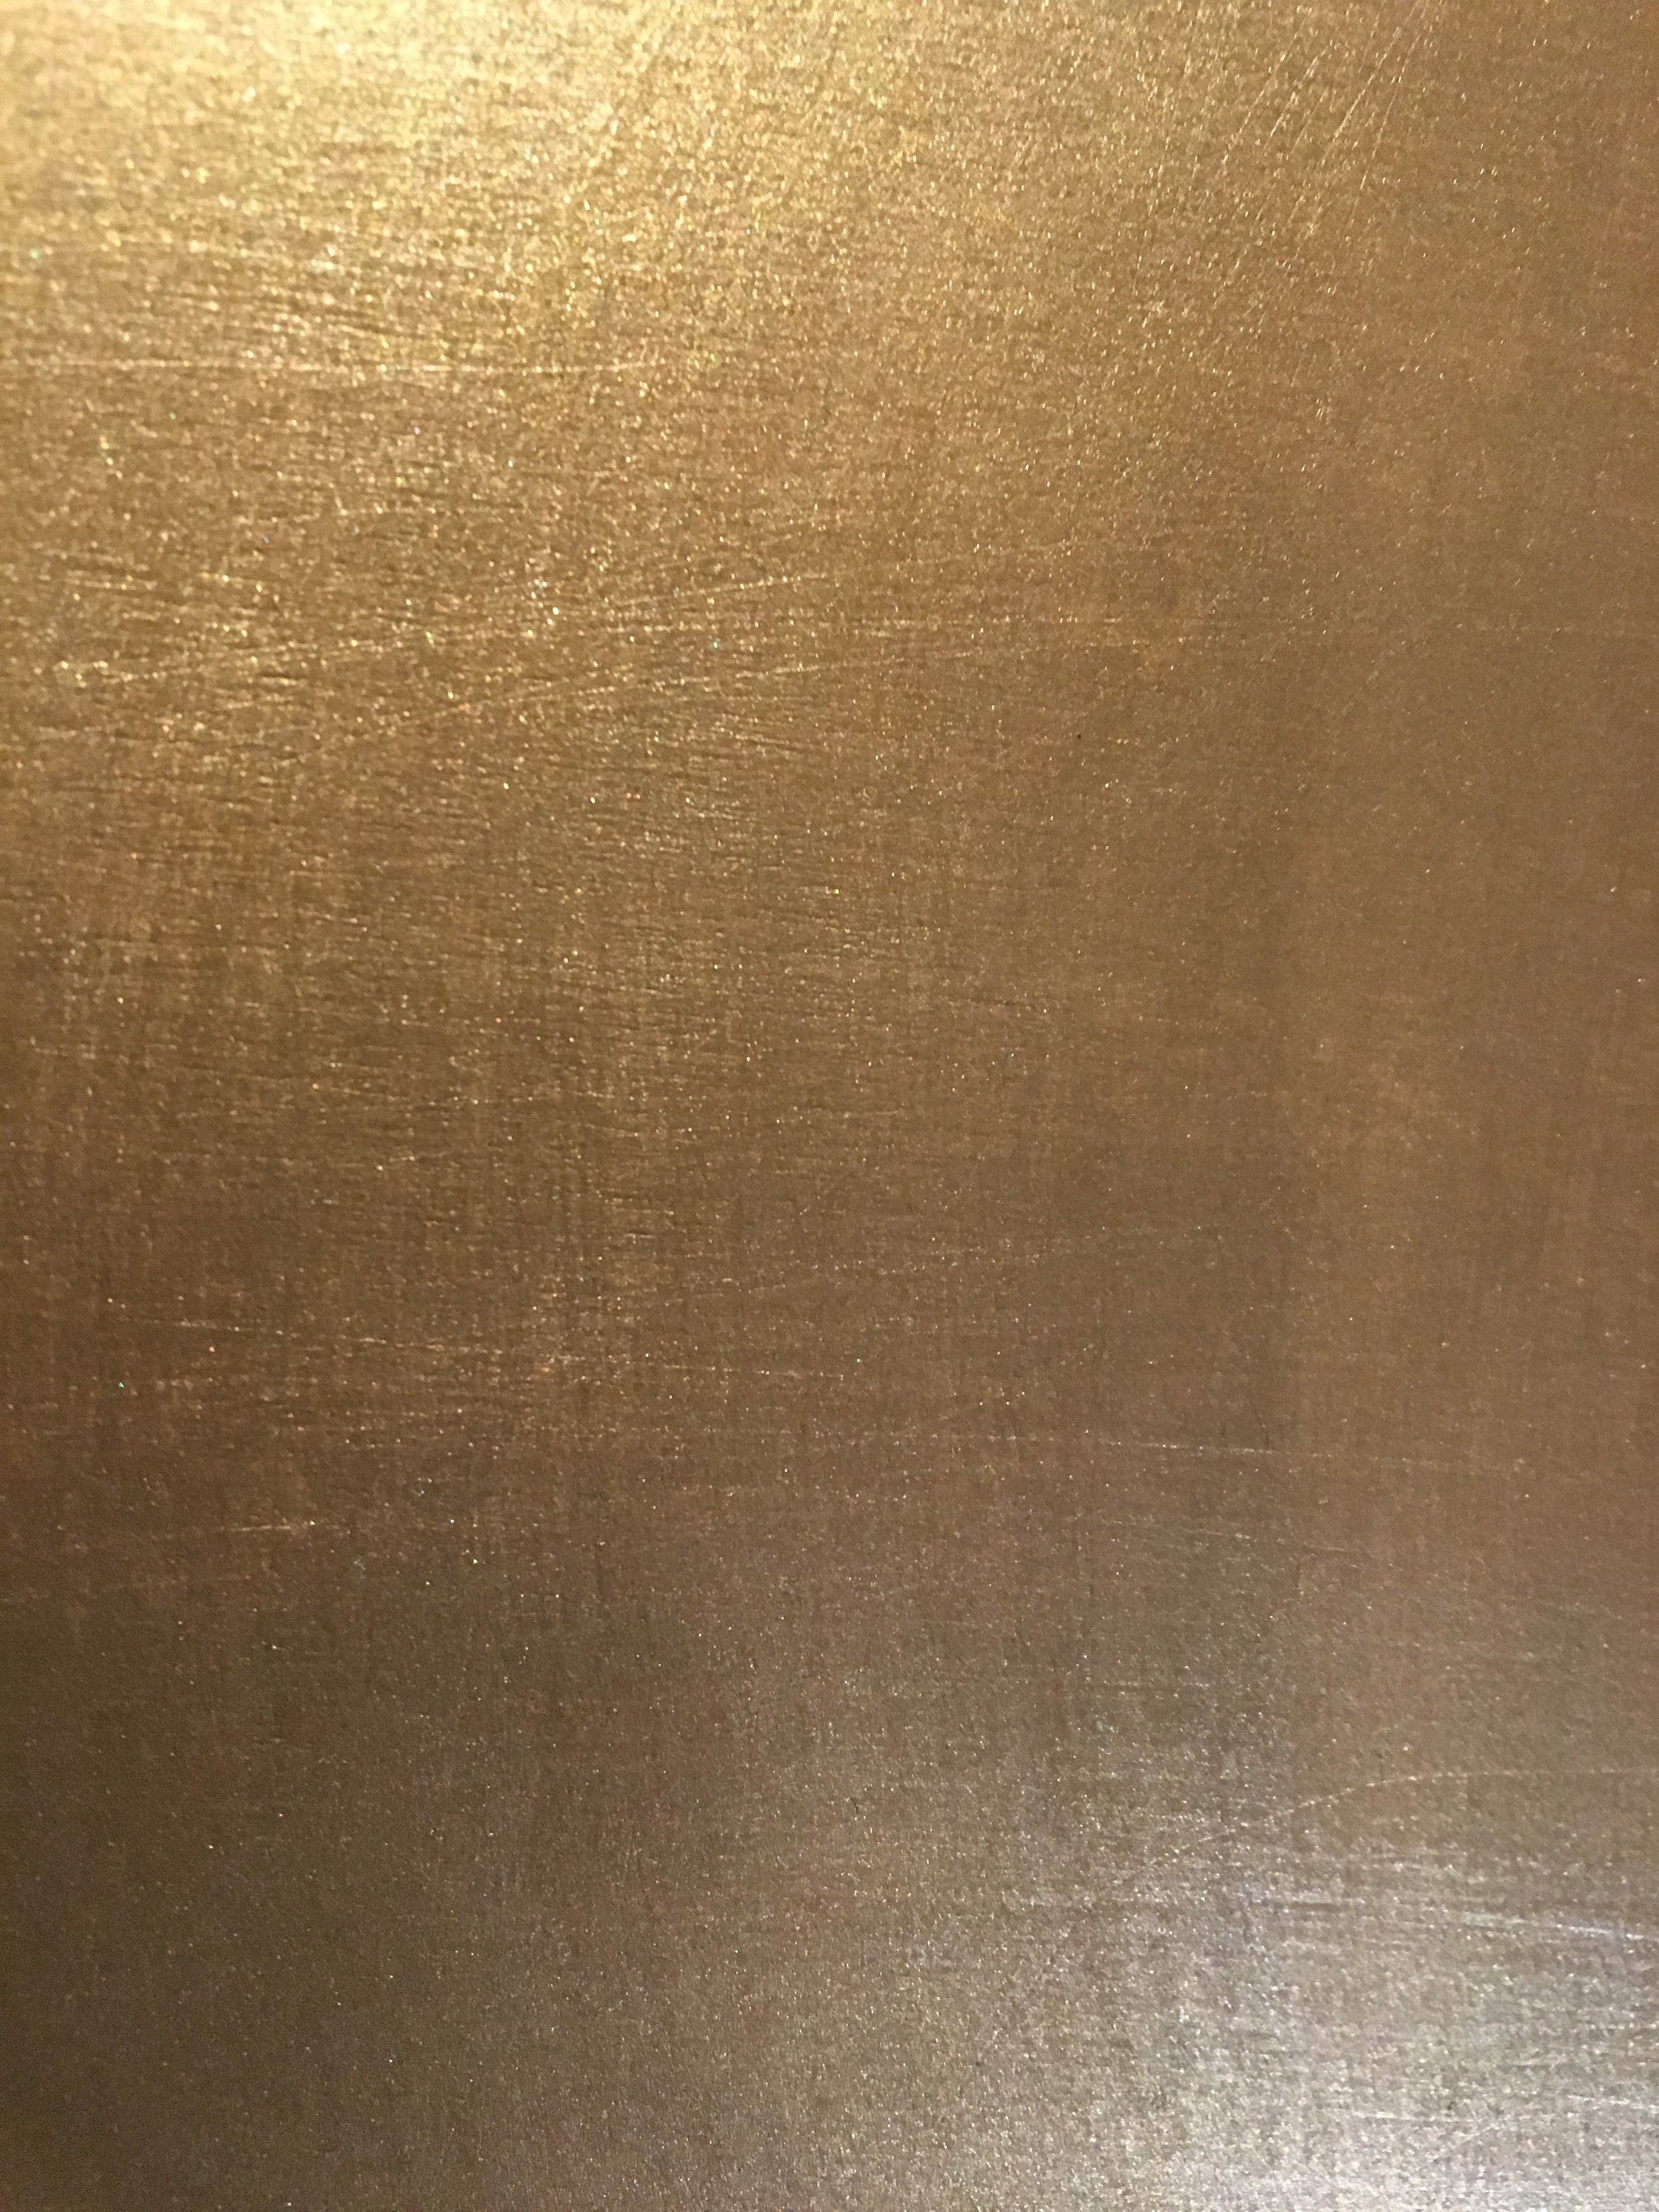 Gold stain